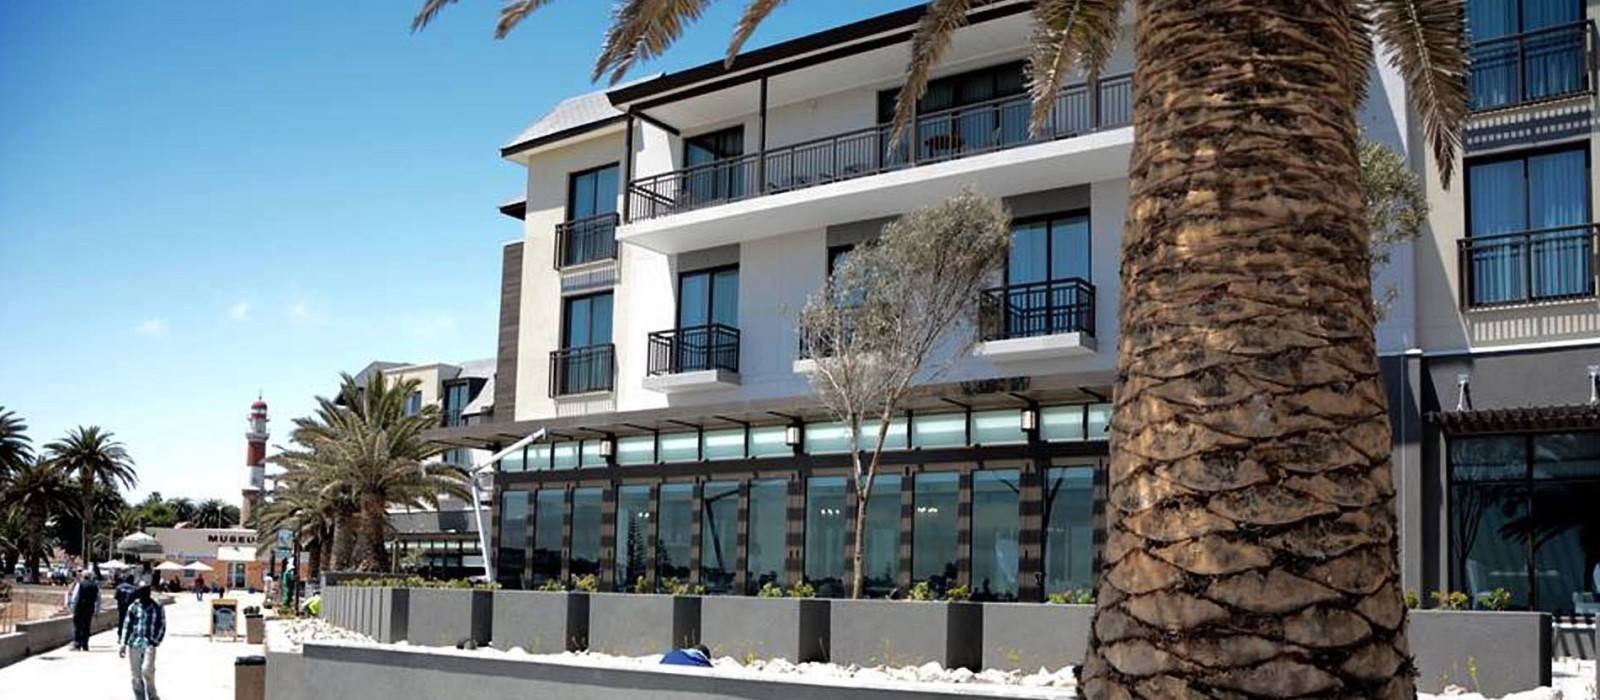 Hotel The Strand  Namibia